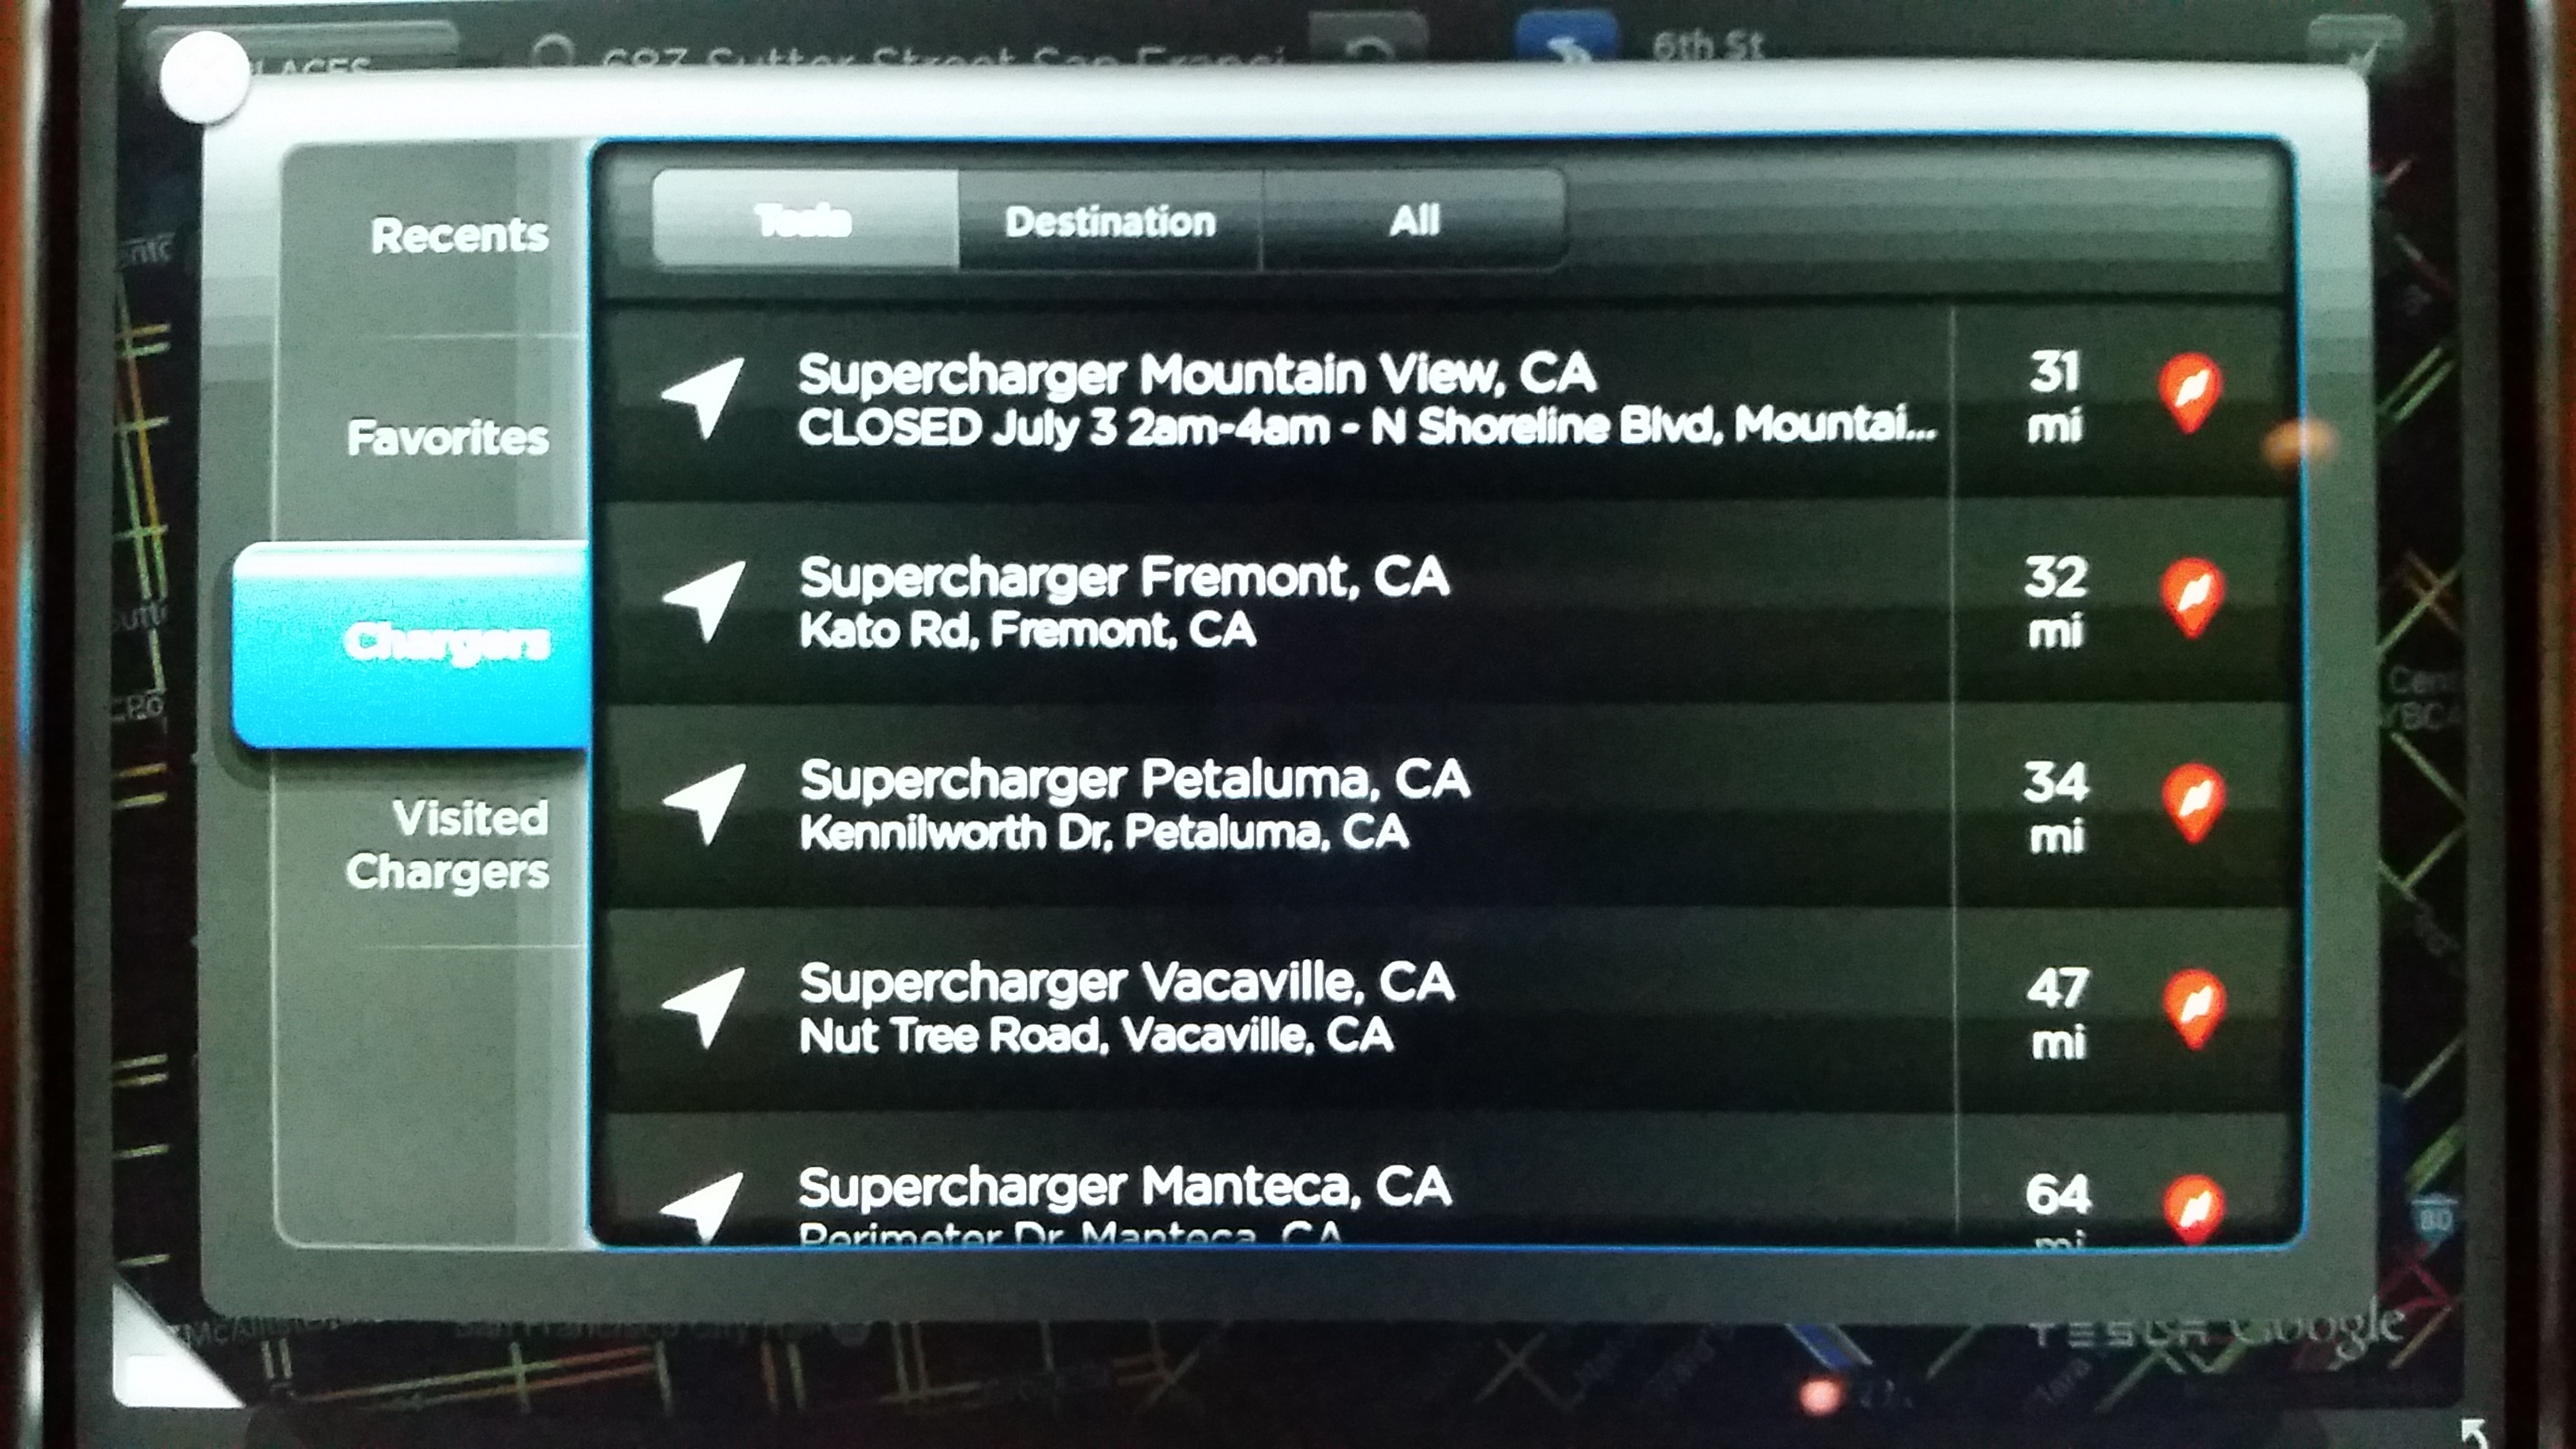 Mountain View-supercharger-closed